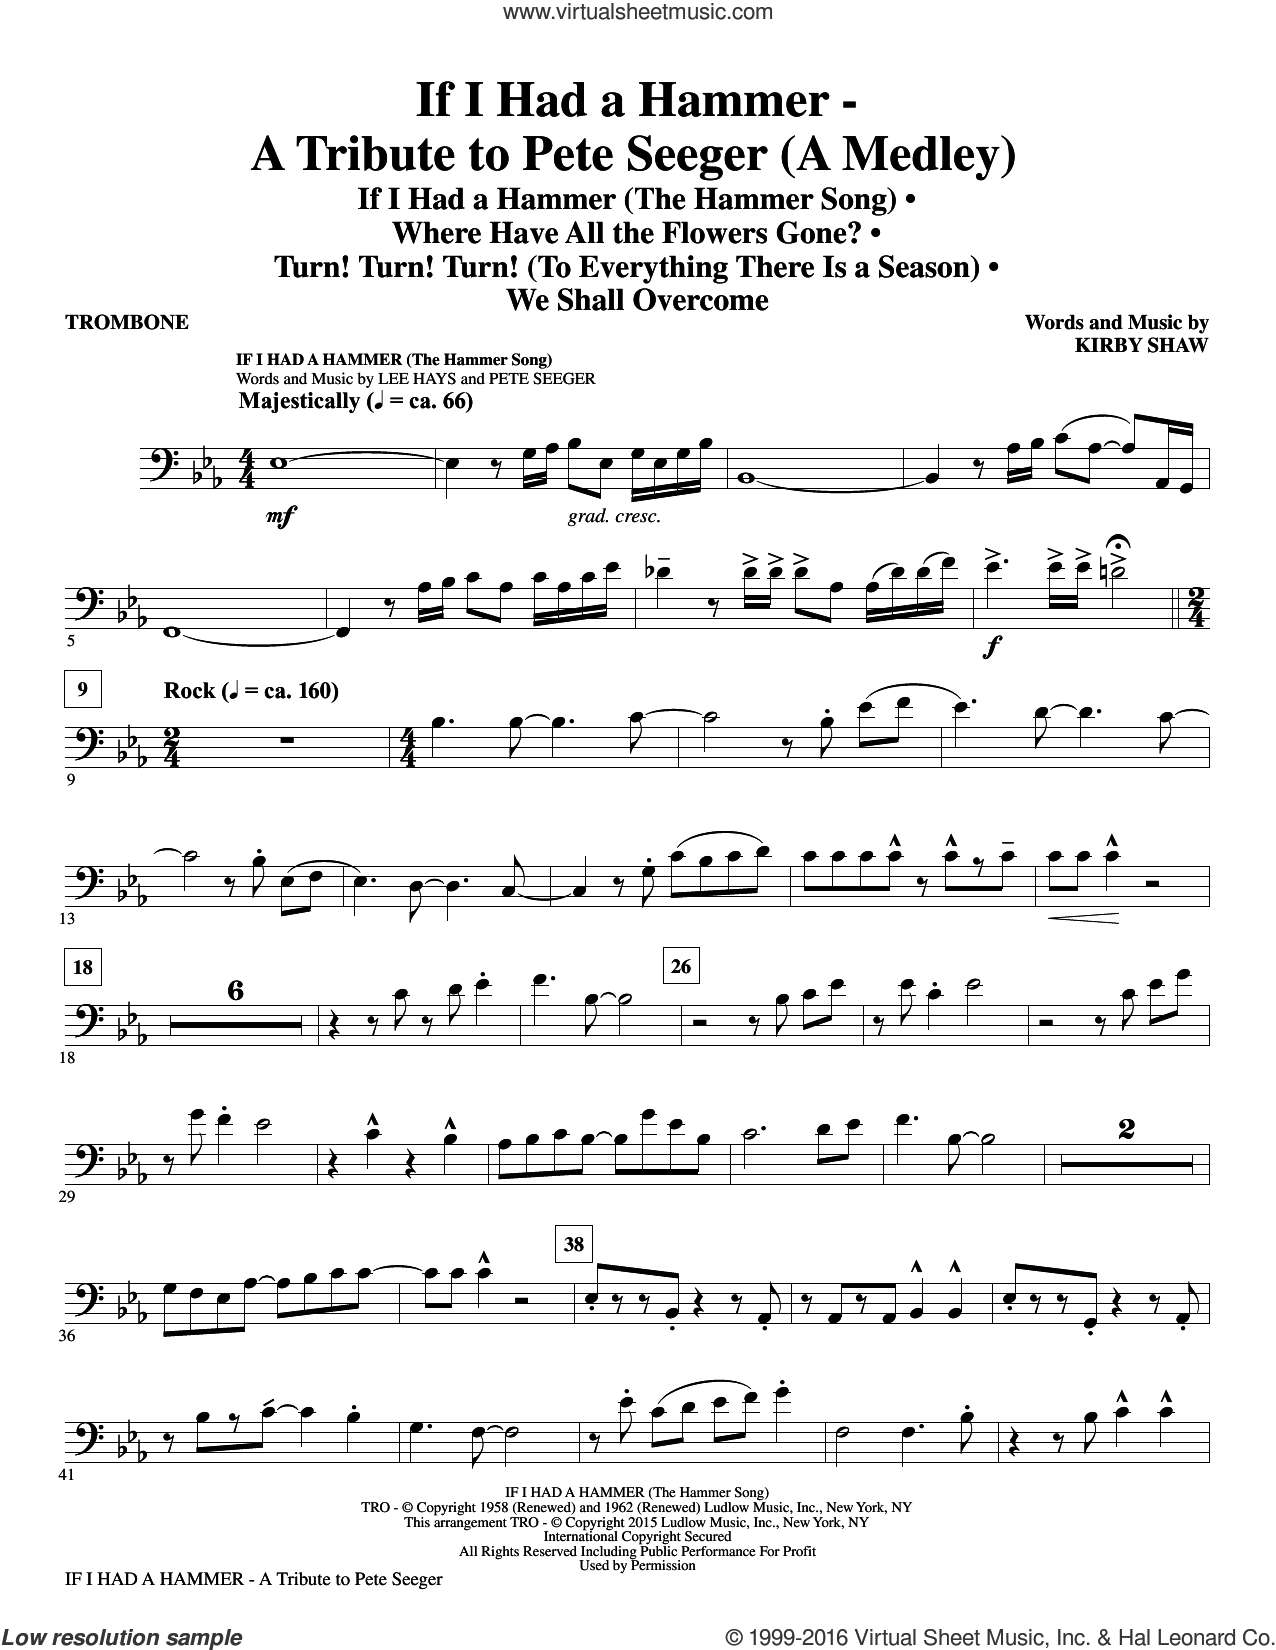 If I Had A Hammer, a tribute to pete seeger sheet music for orchestra/band (trombone) by Pete Seeger